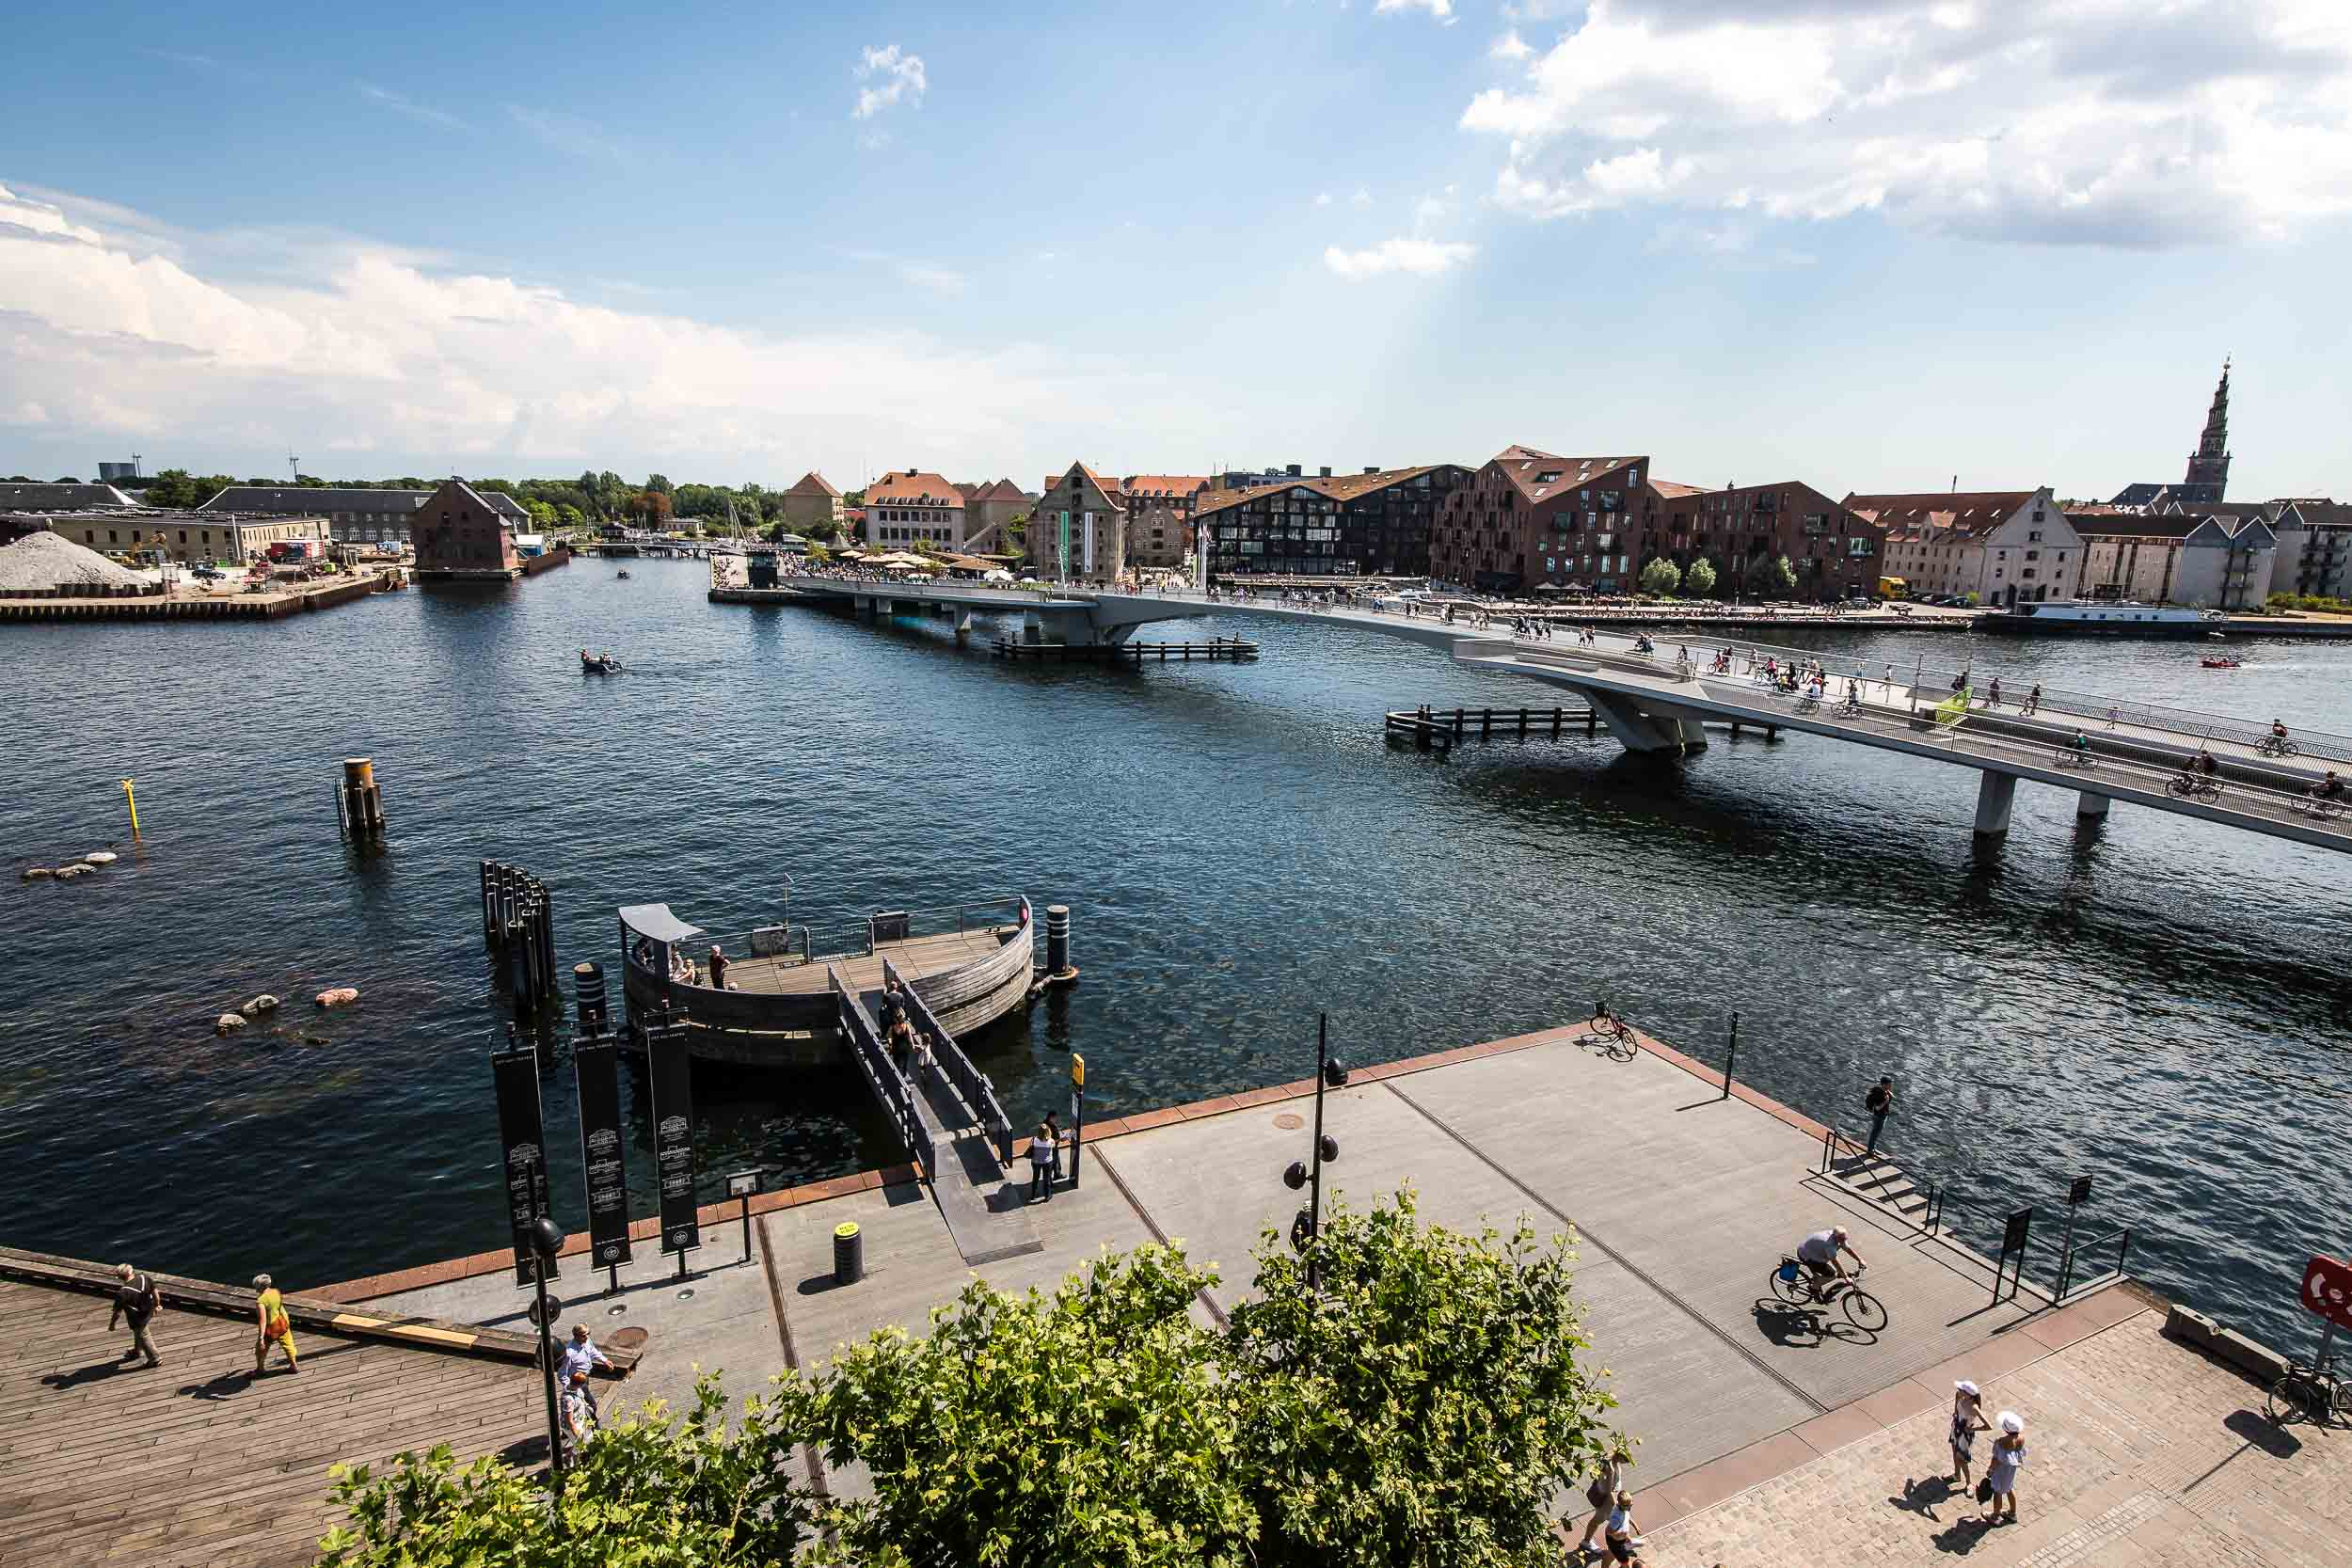 The View from the Executive Double Delux View Room, Hotel 71 Nyhavn, Copenhagen-2.jpg